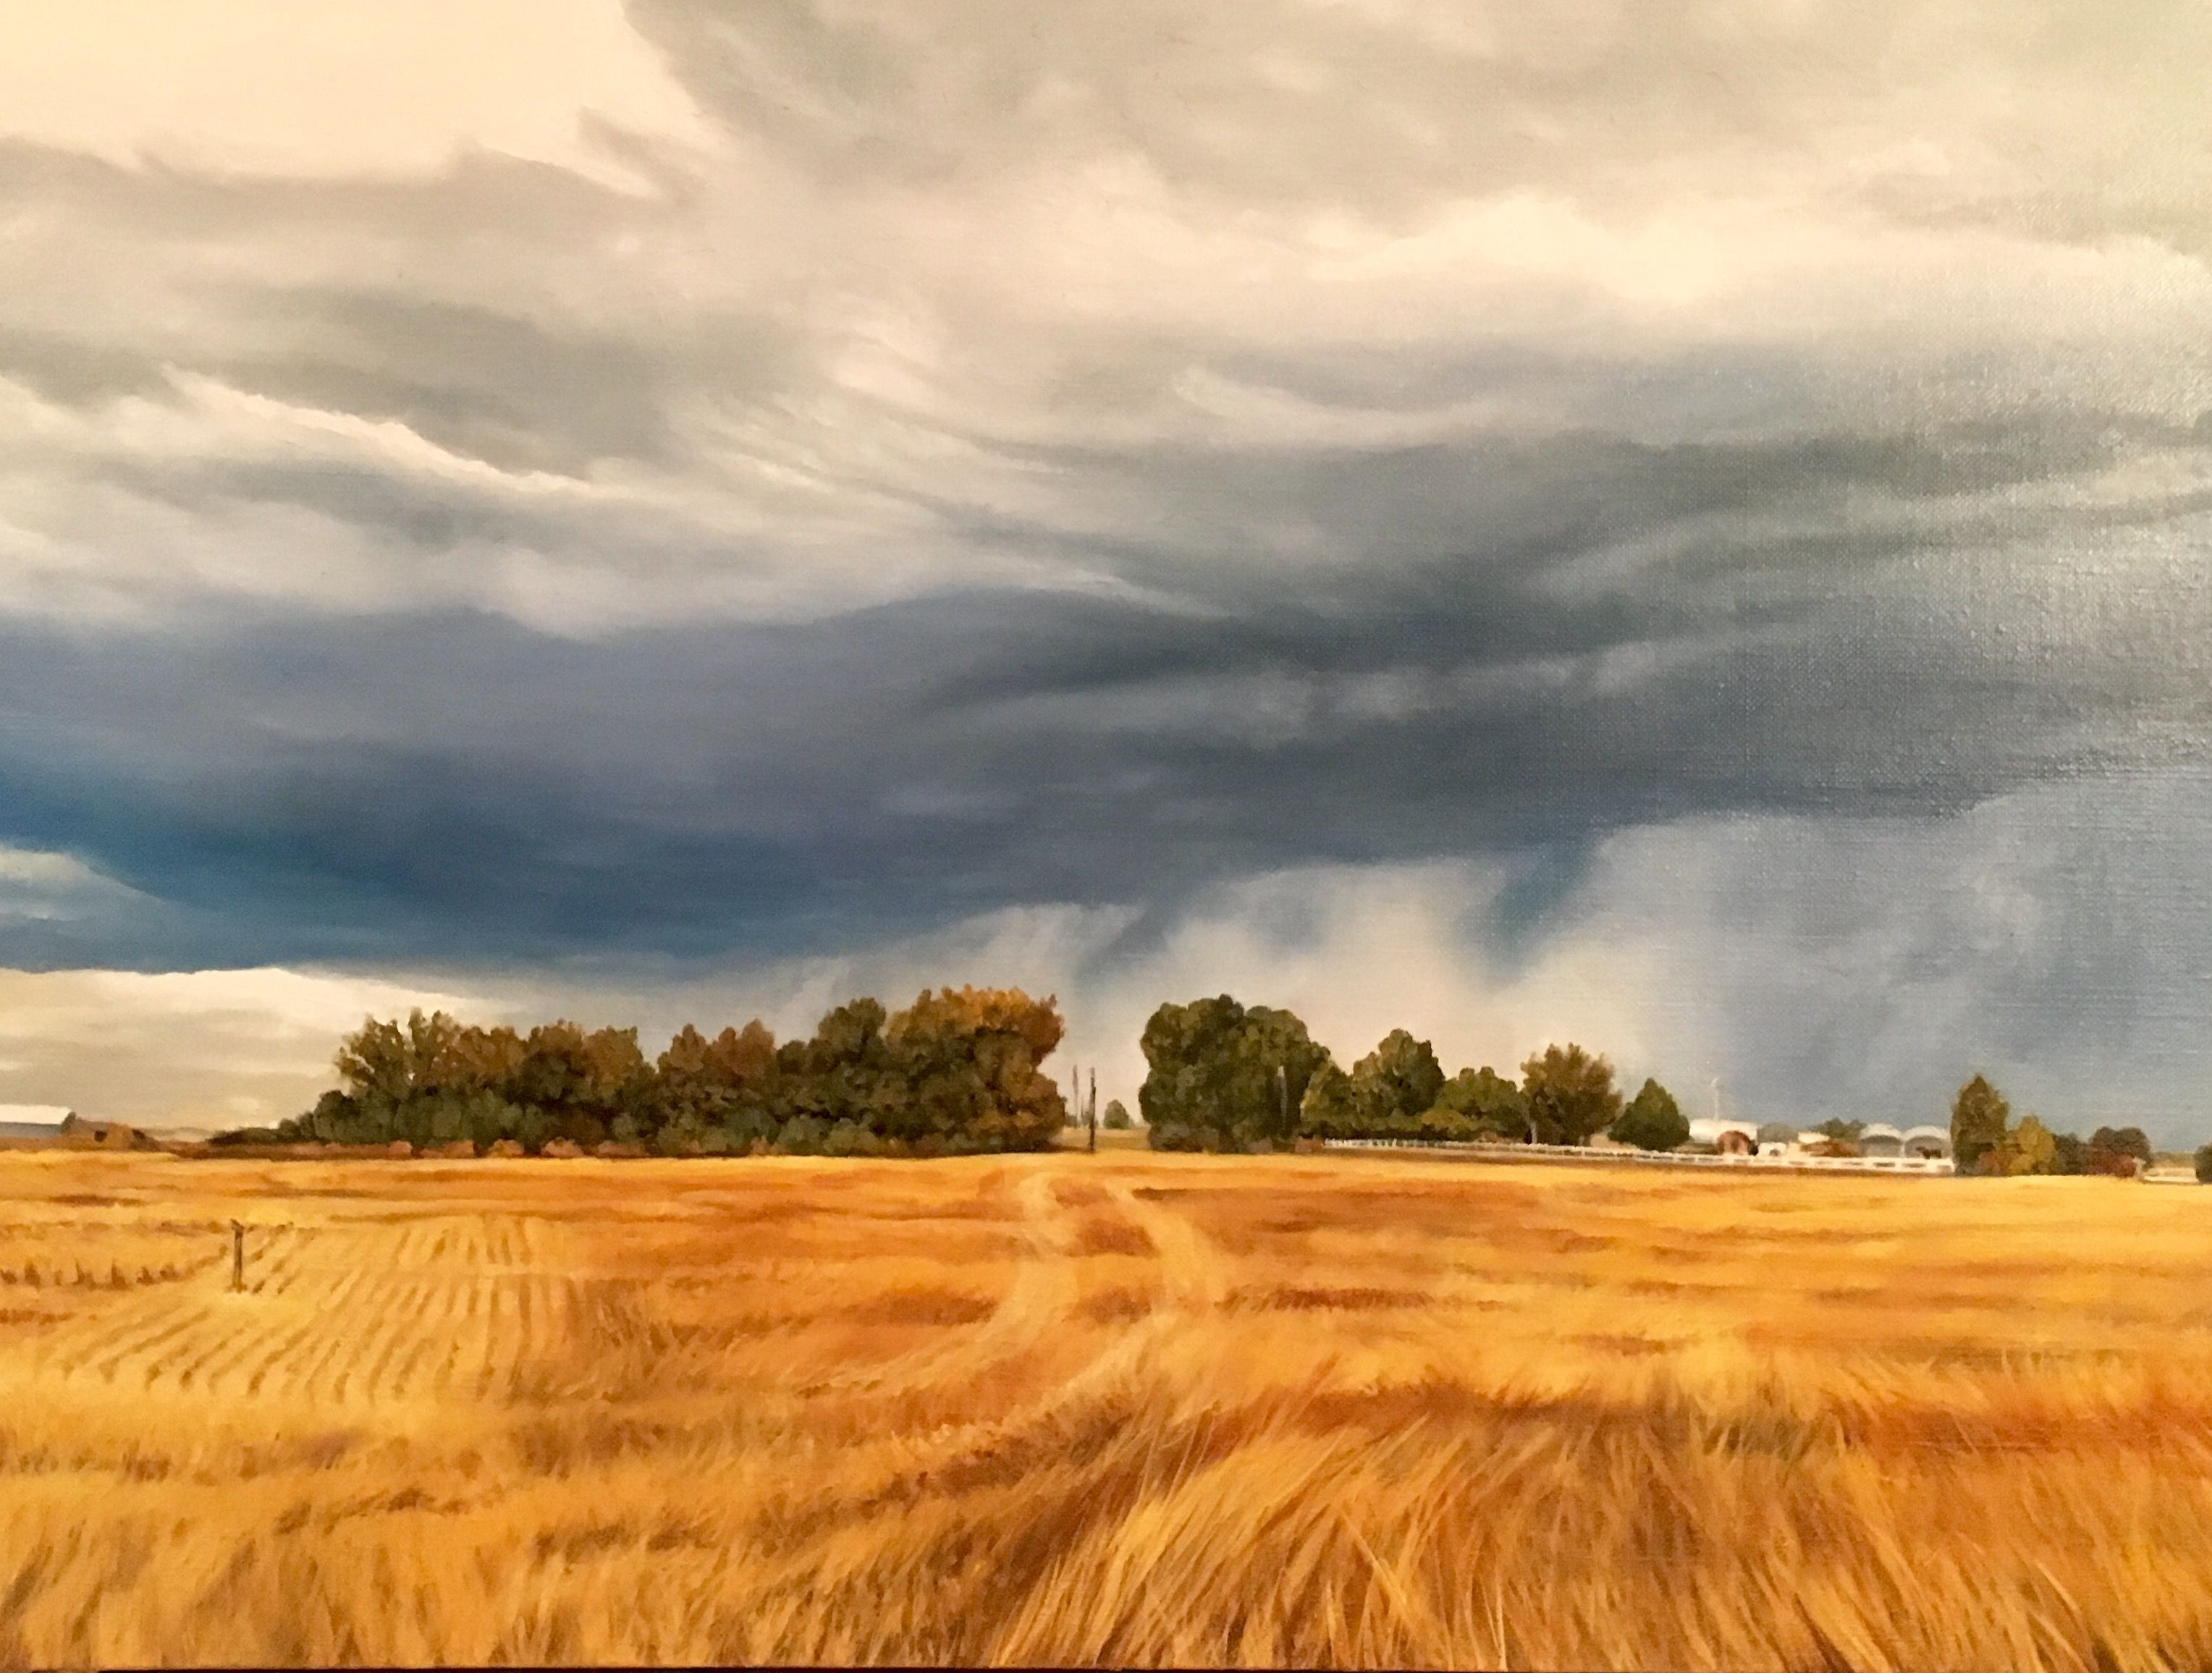 Idaho Farm painting. Wheat field with stormy clouds. | ART ... for Wheat Farm Painting  555kxo